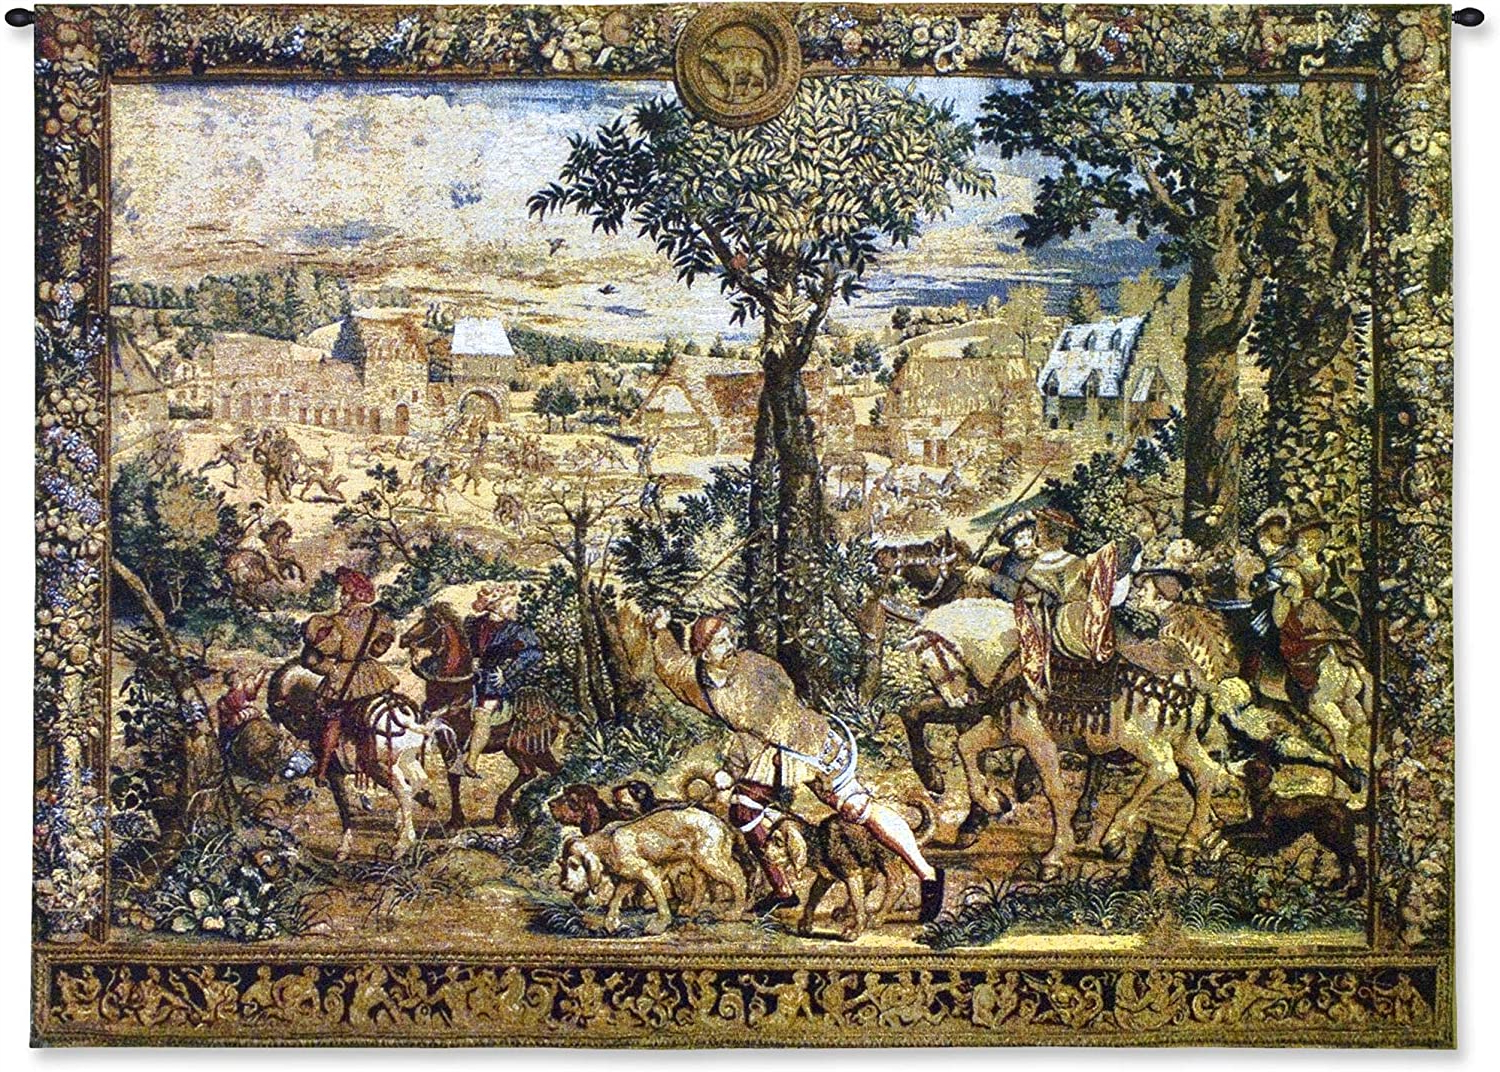 [%hunting Parties Of Archduke Maximilian | Woven Tapestry Wall Art Hanging | Intricate Renaissance Royal Hunting Scene | 100% Cotton Usa Size 53x40 With 2020 Blended Fabric Italian Wall Hangings|blended Fabric Italian Wall Hangings Within Newest Hunting Parties Of Archduke Maximilian | Woven Tapestry Wall Art Hanging | Intricate Renaissance Royal Hunting Scene | 100% Cotton Usa Size 53x40|well Known Blended Fabric Italian Wall Hangings Intended For Hunting Parties Of Archduke Maximilian | Woven Tapestry Wall Art Hanging | Intricate Renaissance Royal Hunting Scene | 100% Cotton Usa Size 53x40|famous Hunting Parties Of Archduke Maximilian | Woven Tapestry Wall Art Hanging | Intricate Renaissance Royal Hunting Scene | 100% Cotton Usa Size 53x40 Within Blended Fabric Italian Wall Hangings%] (View 19 of 20)